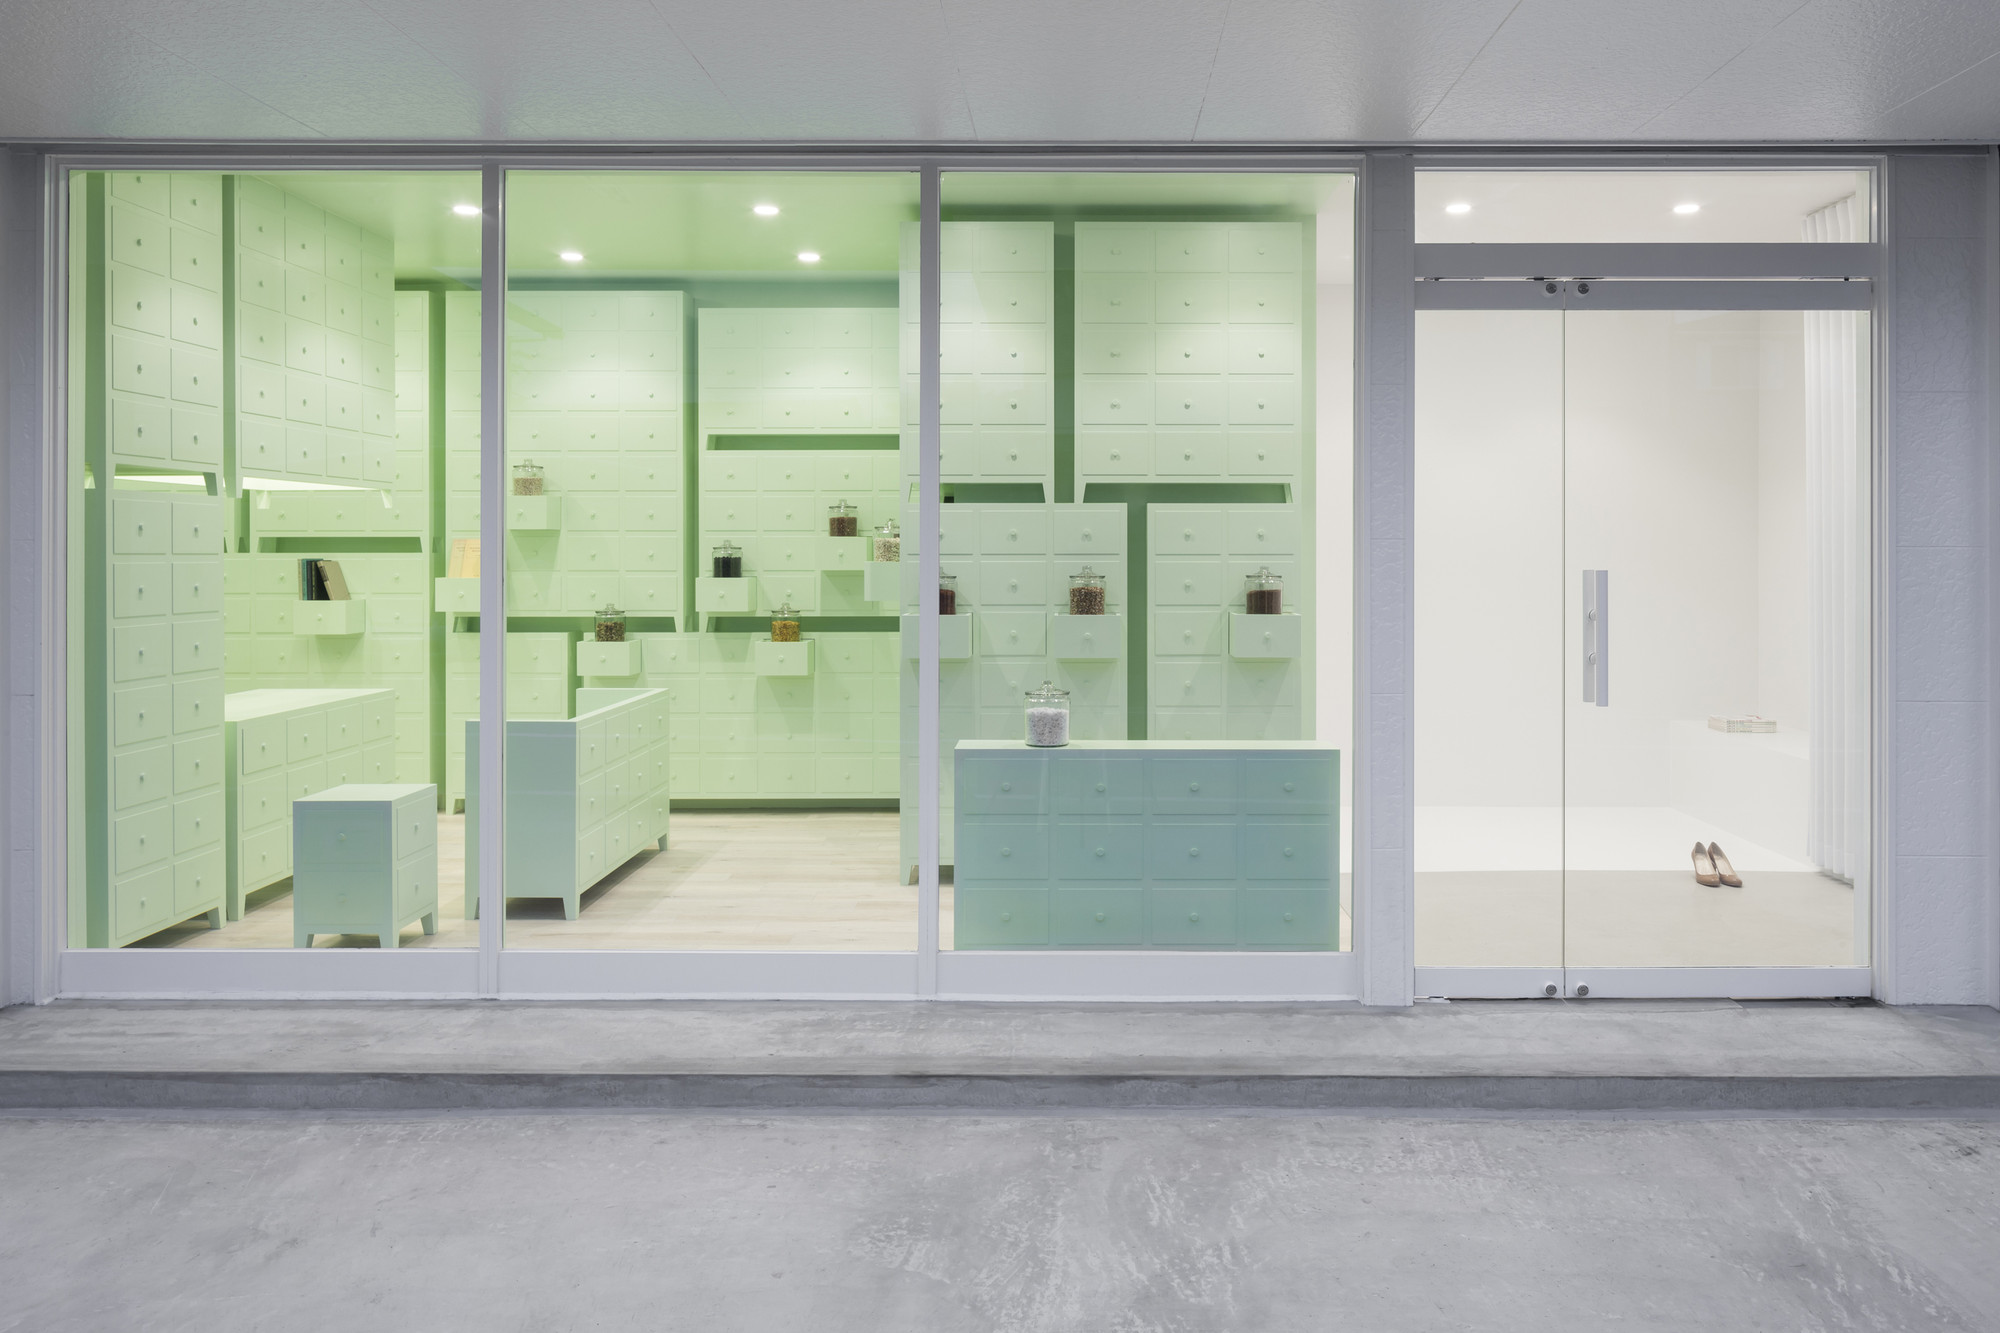 New Case Studies Biophilic Design further Massage Clinic Simple Floor Plan furthermore Textura Gallery together with Sumiyoshido K o Lounge   Id Inc  Id Inc further High Classroom Furniture. on acupuncture office floor plan